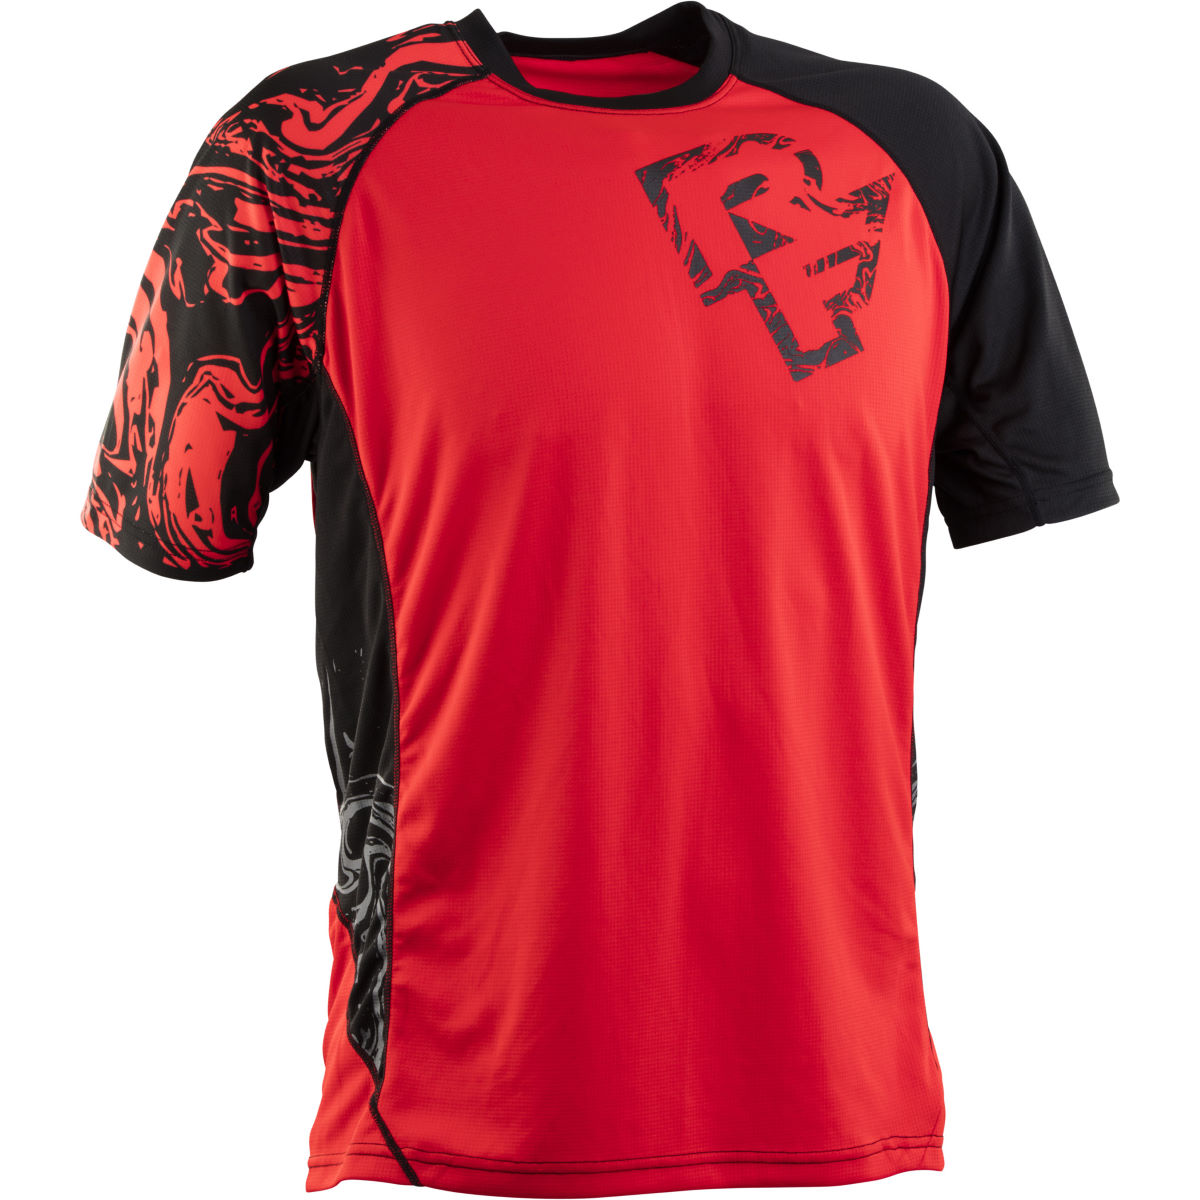 Maillot Race Face Indy (rouge/noir) - XL Rouge/Noir Maillots